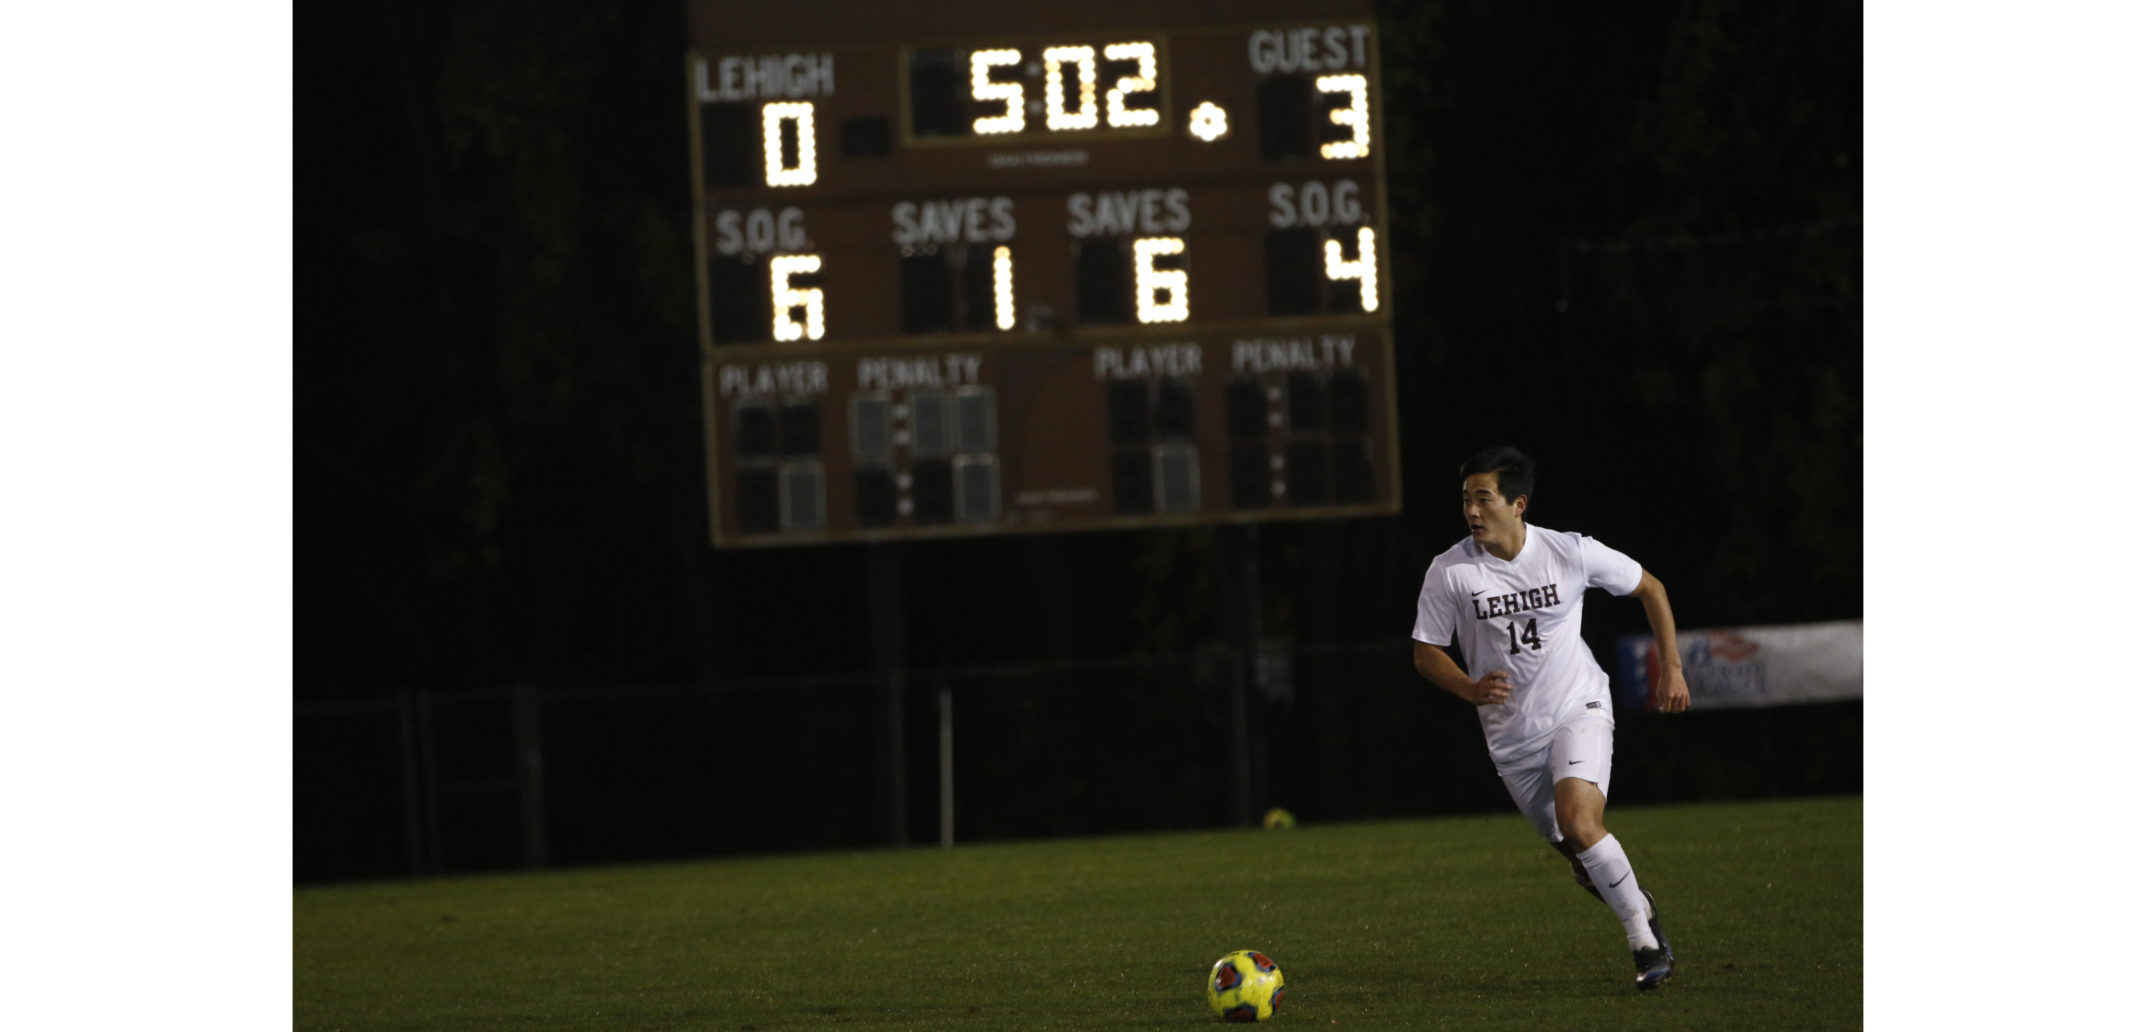 Senior midfielder Tatsu Otani forces the ball up the line during the final minutes of the Patriot League quarterfinal game against Holy Cross at Ulrich Sports Complex on Tuesday night. The Mountain Hawks fought hard until the last second but the game ended in a 3-0 loss for Lehigh. (Alexis McGowan/ B&W Staff)